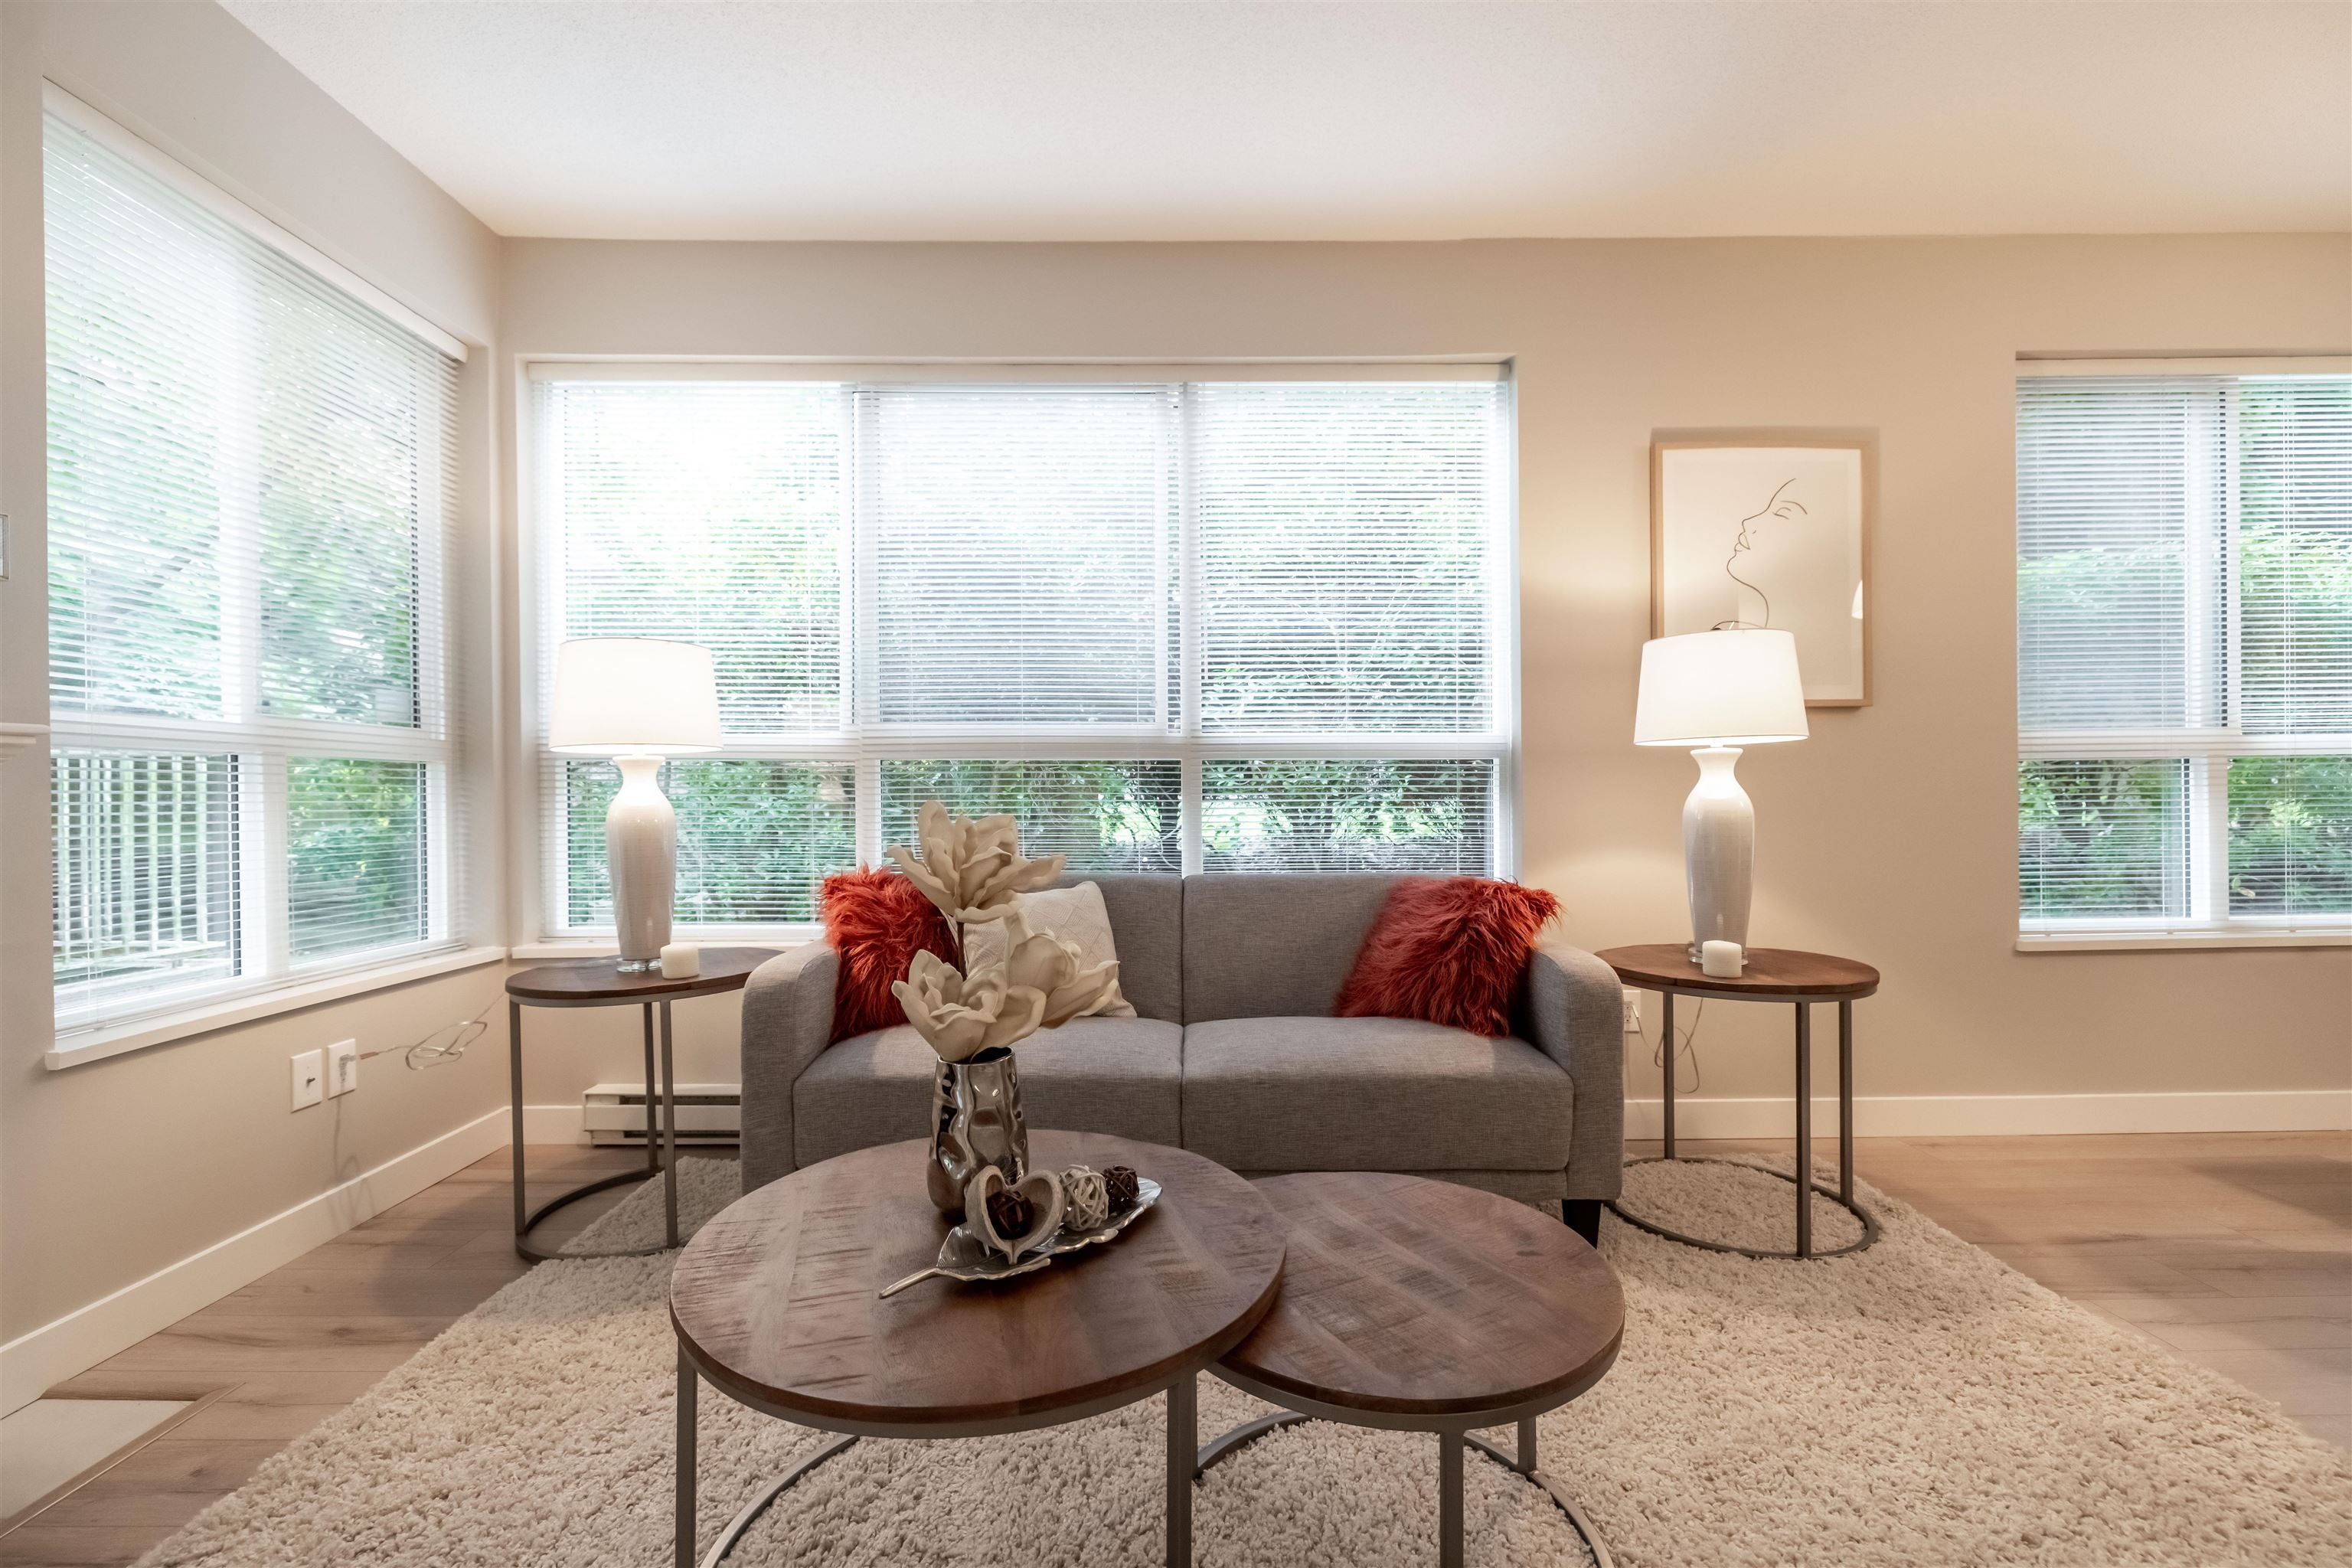 105 8139 121A STREET - Queen Mary Park Surrey Apartment/Condo for sale, 2 Bedrooms (R2623168) - #2